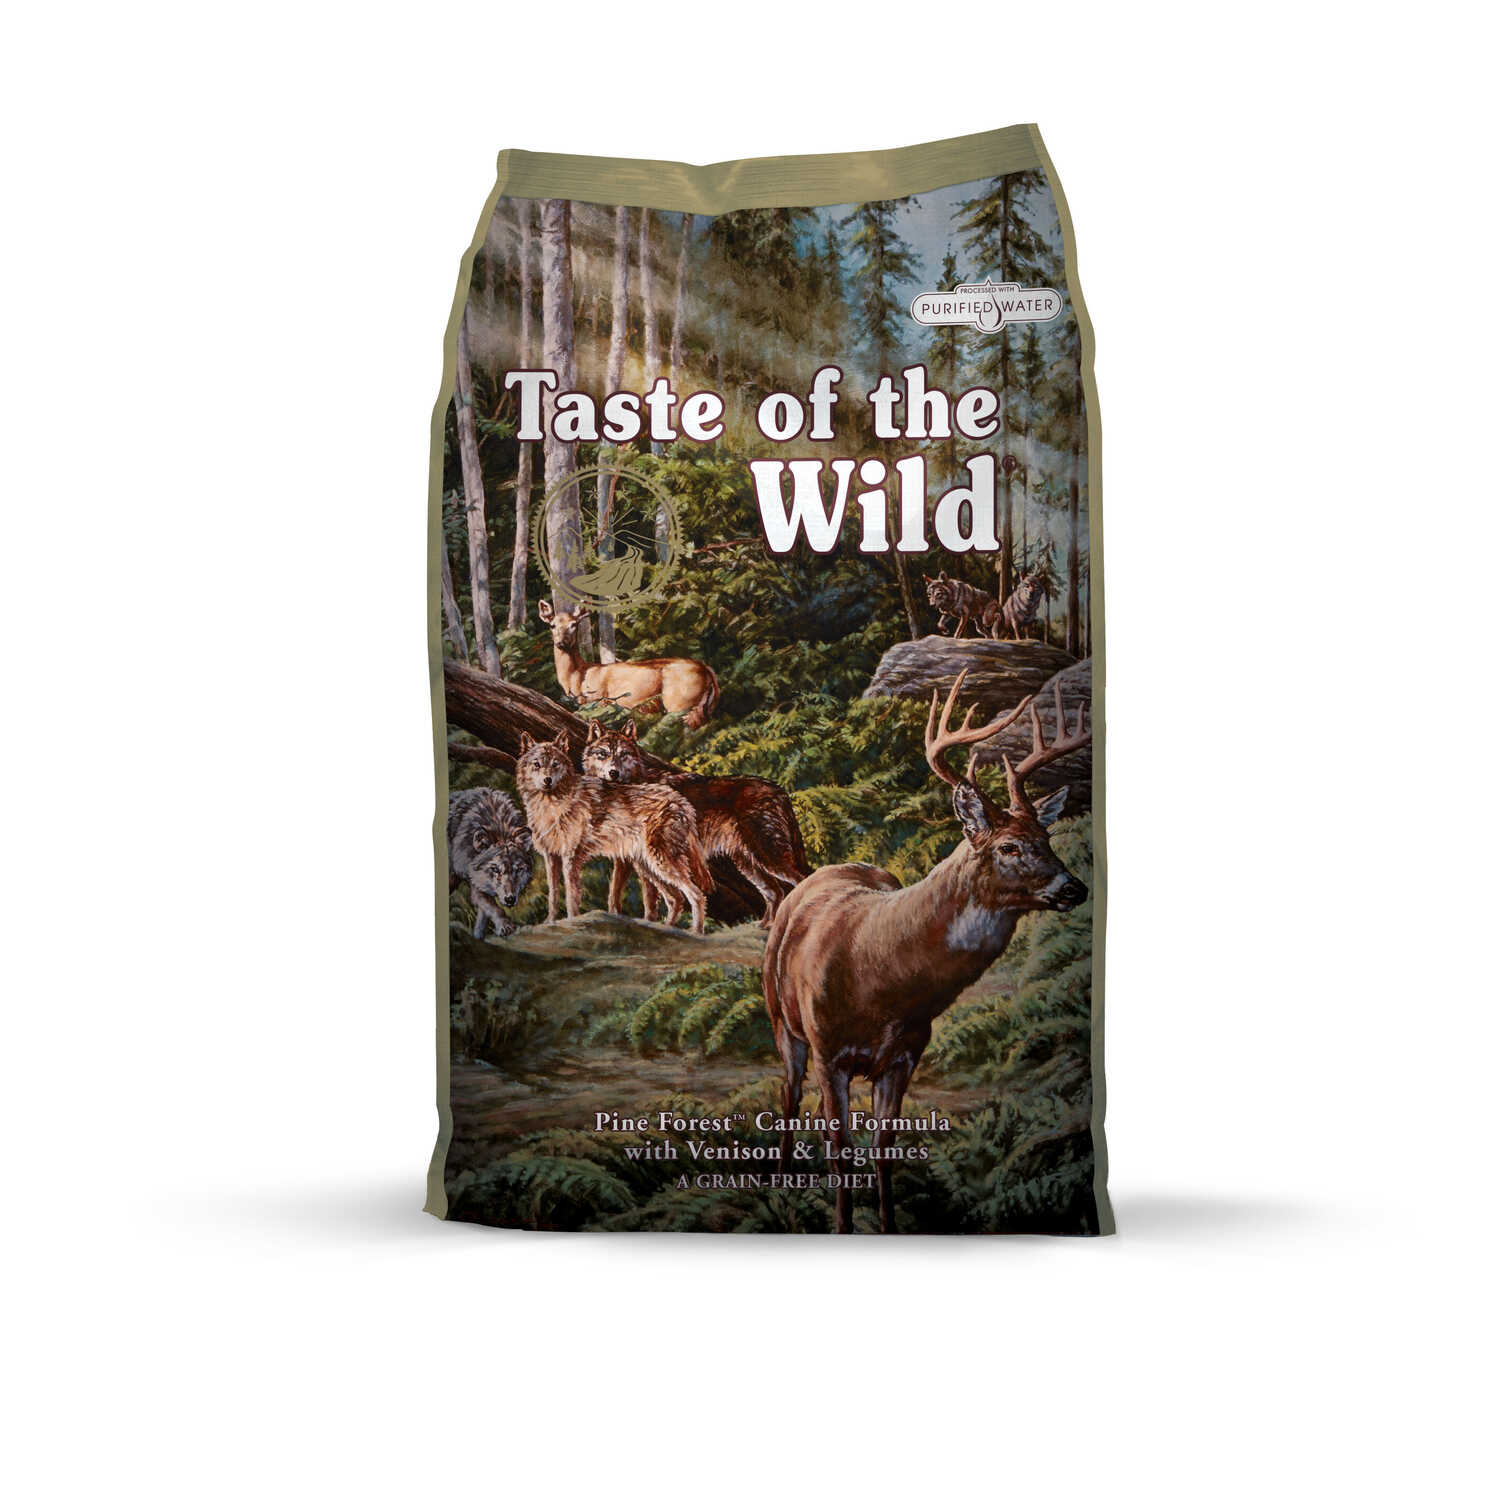 Taste of the Wild  Pine Forest  Venison/Legumes  Dog  Food  Grain Free 28 lb.